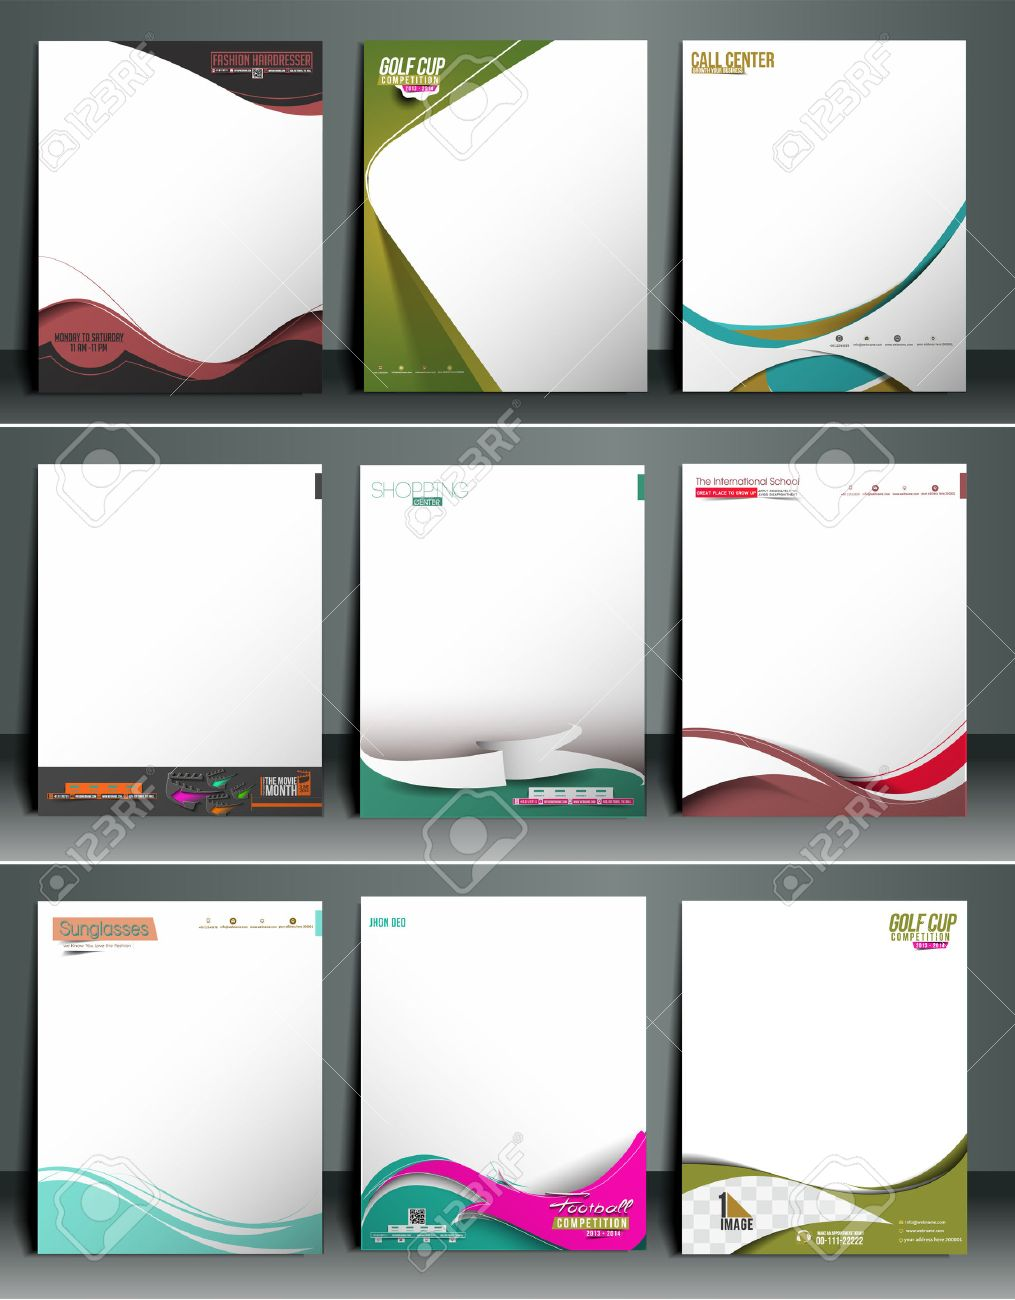 Business Style Corporate Identity Letterhead Template. Stock Vector - 41833686